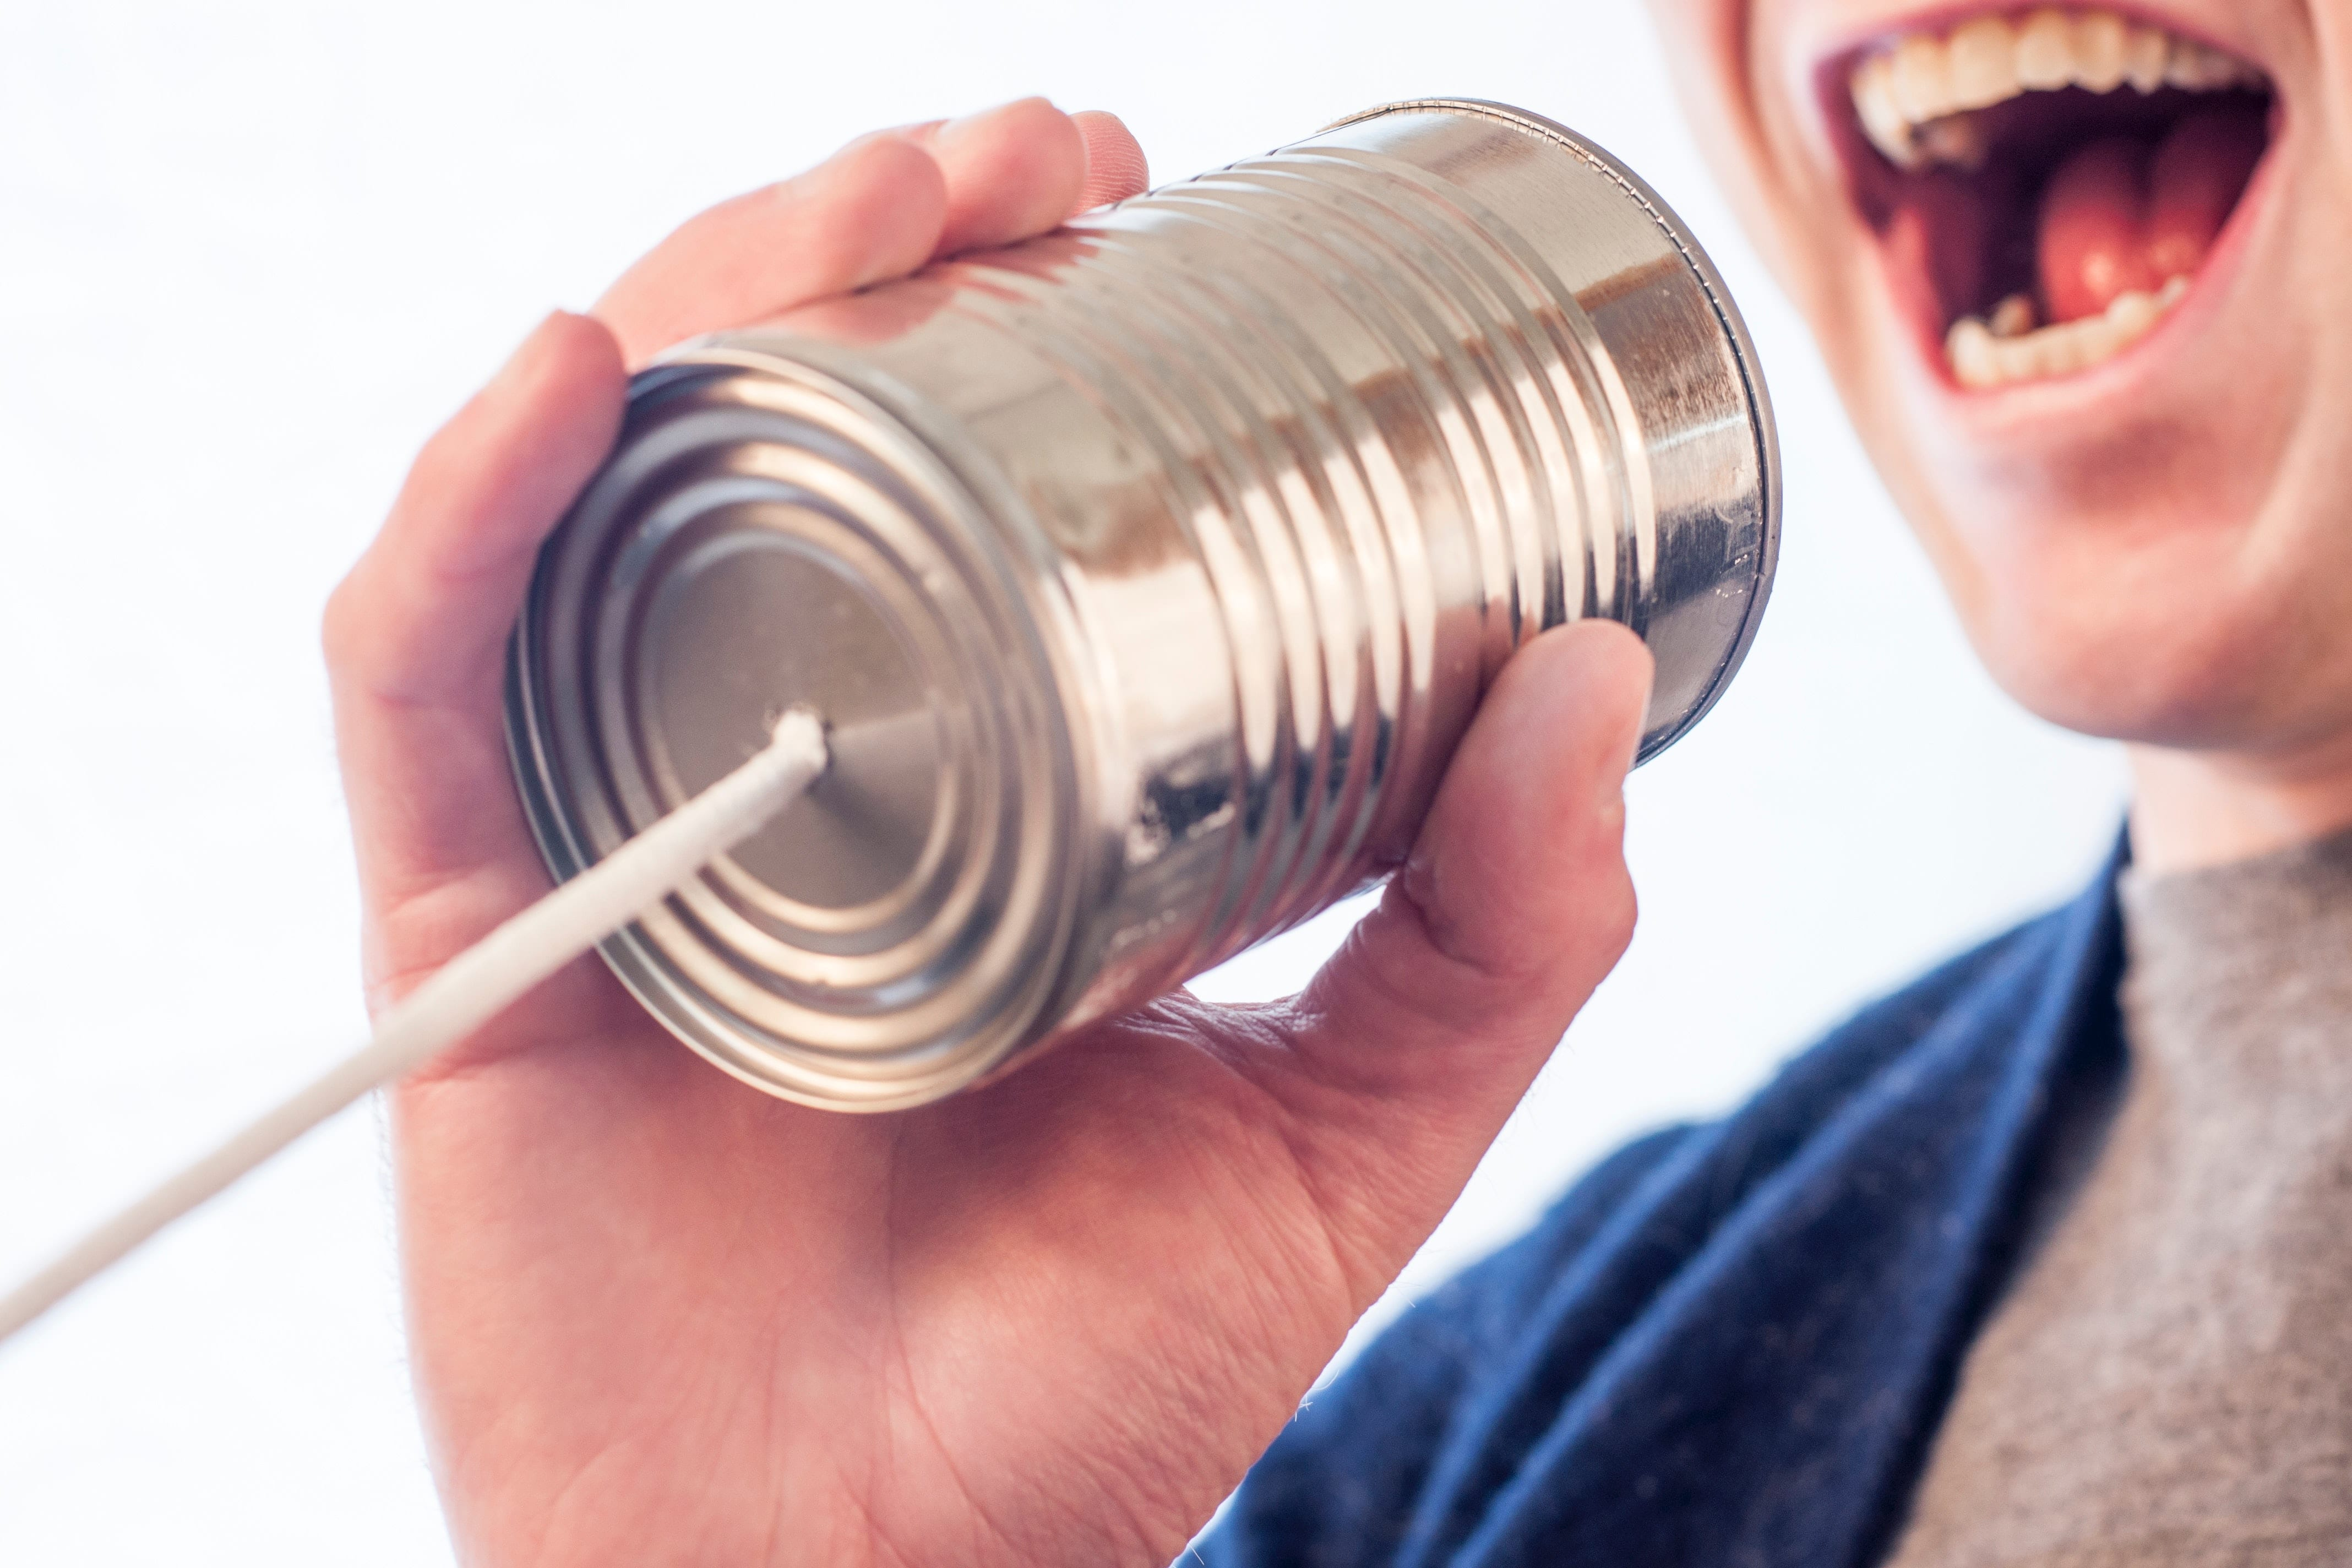 Photo: man speaking into can with a string attached